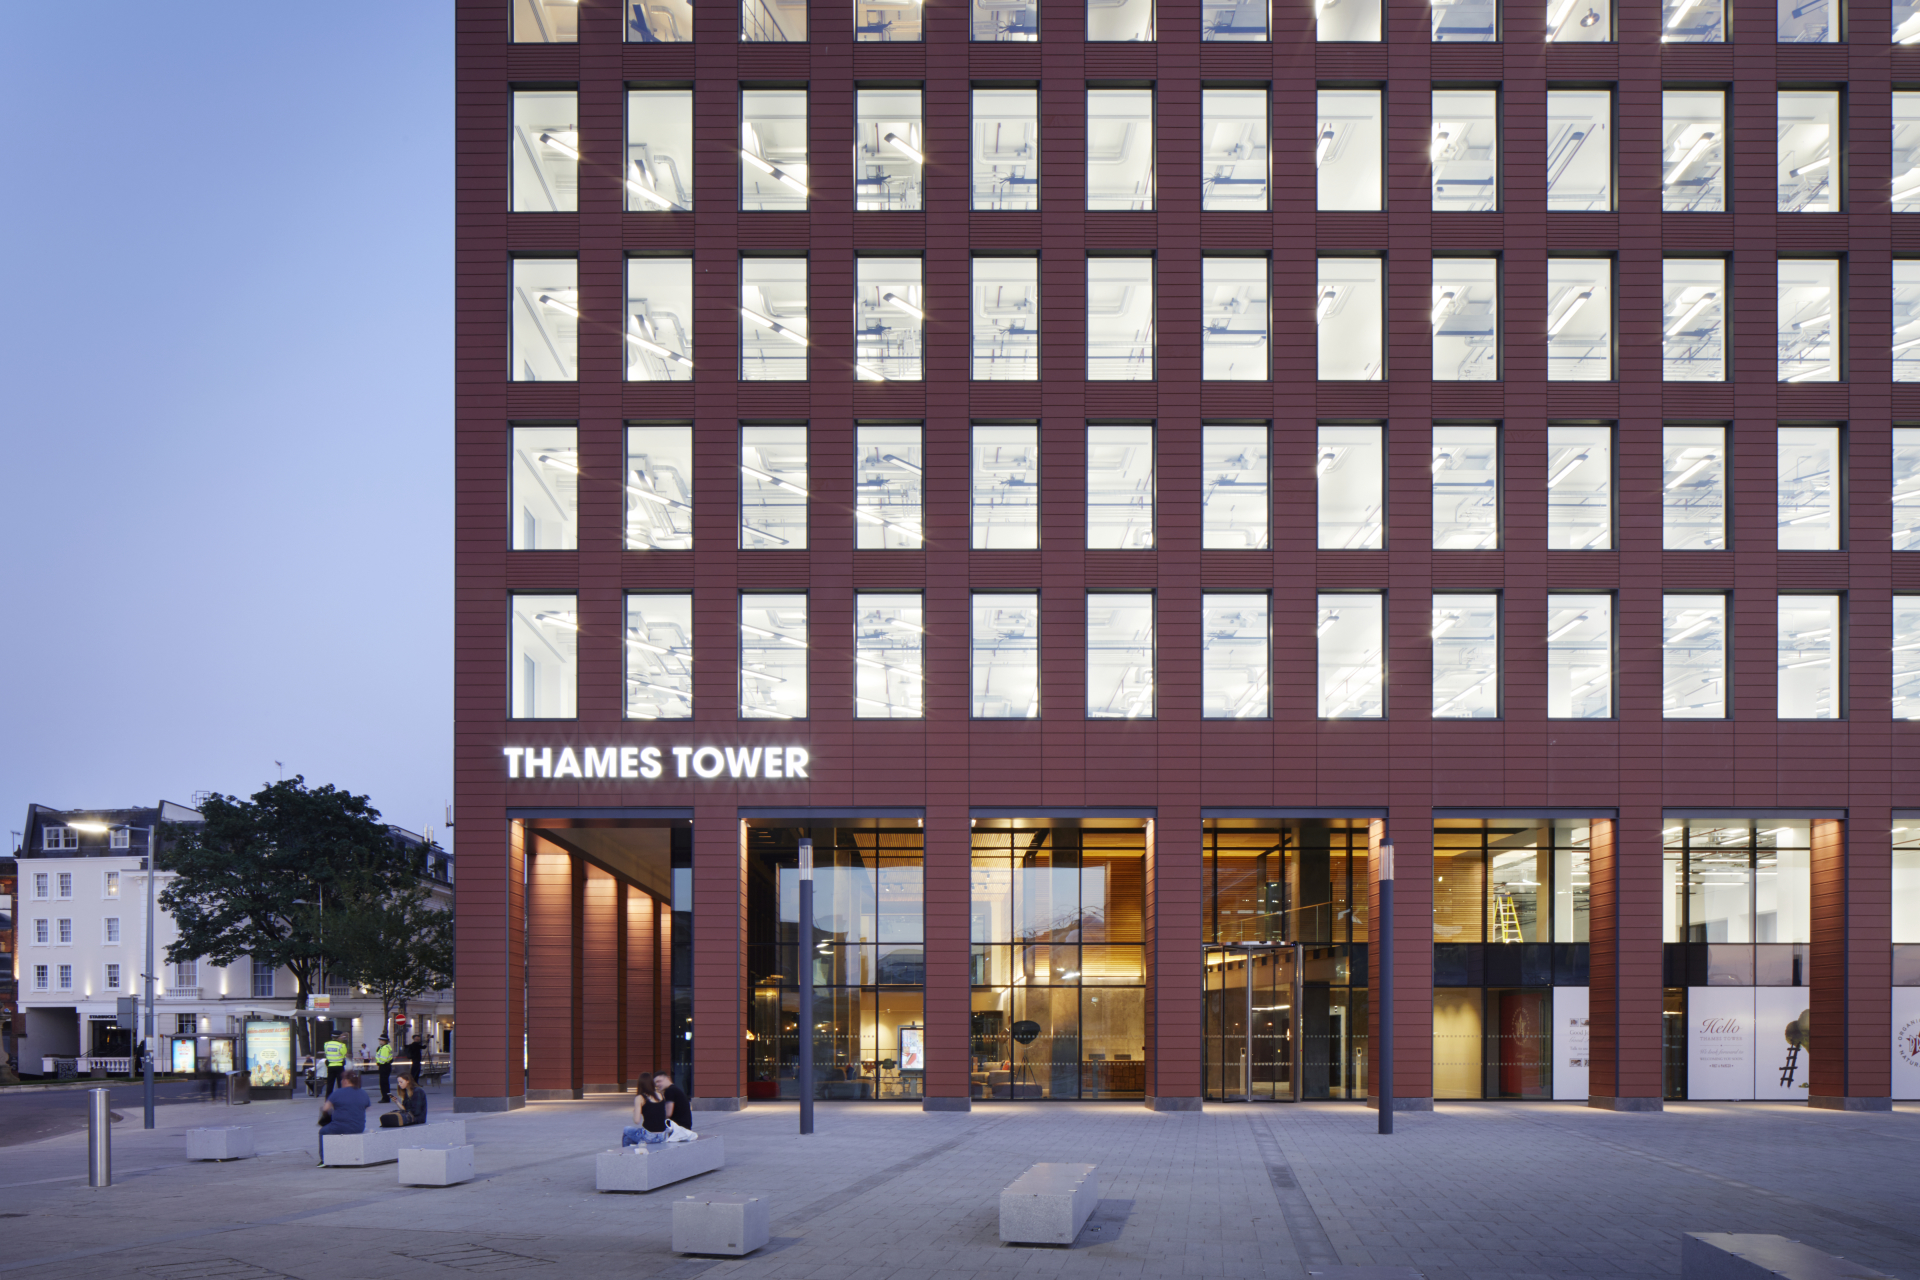 Three more occupiers at Thames Tower